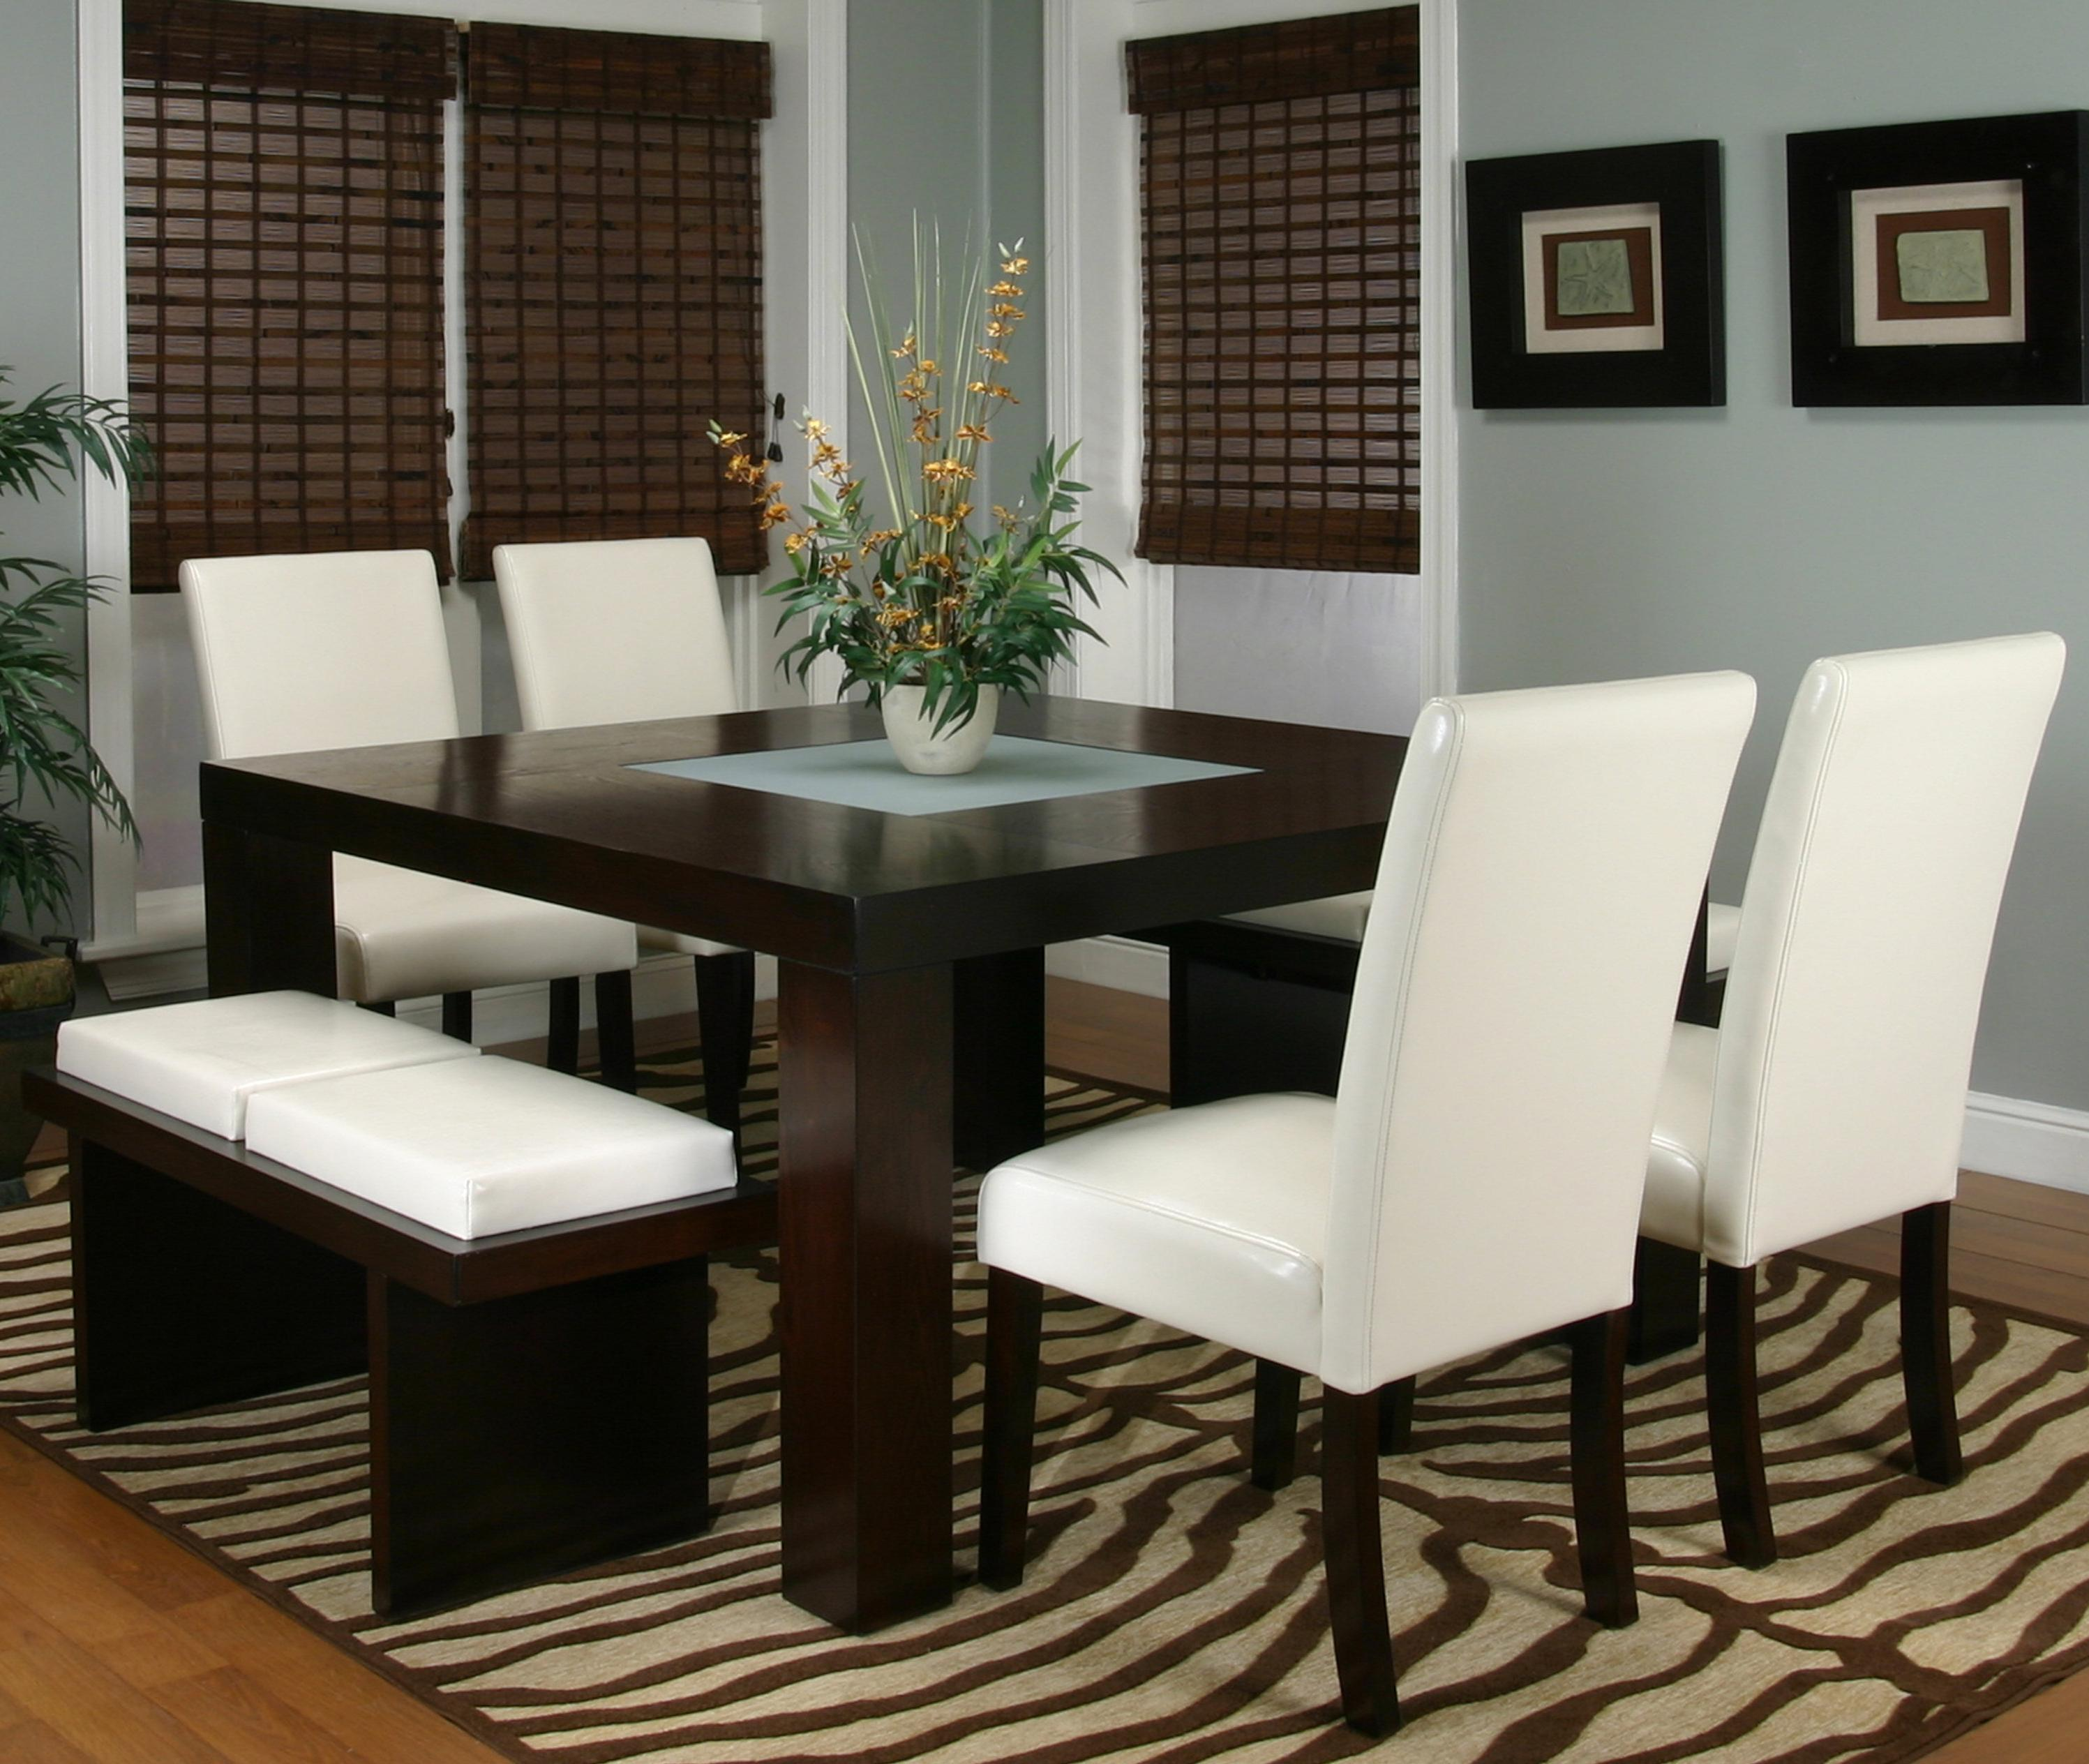 Cramco Inc Contemporary Design Kemper Square Dining Table With - Frosted glass kitchen table